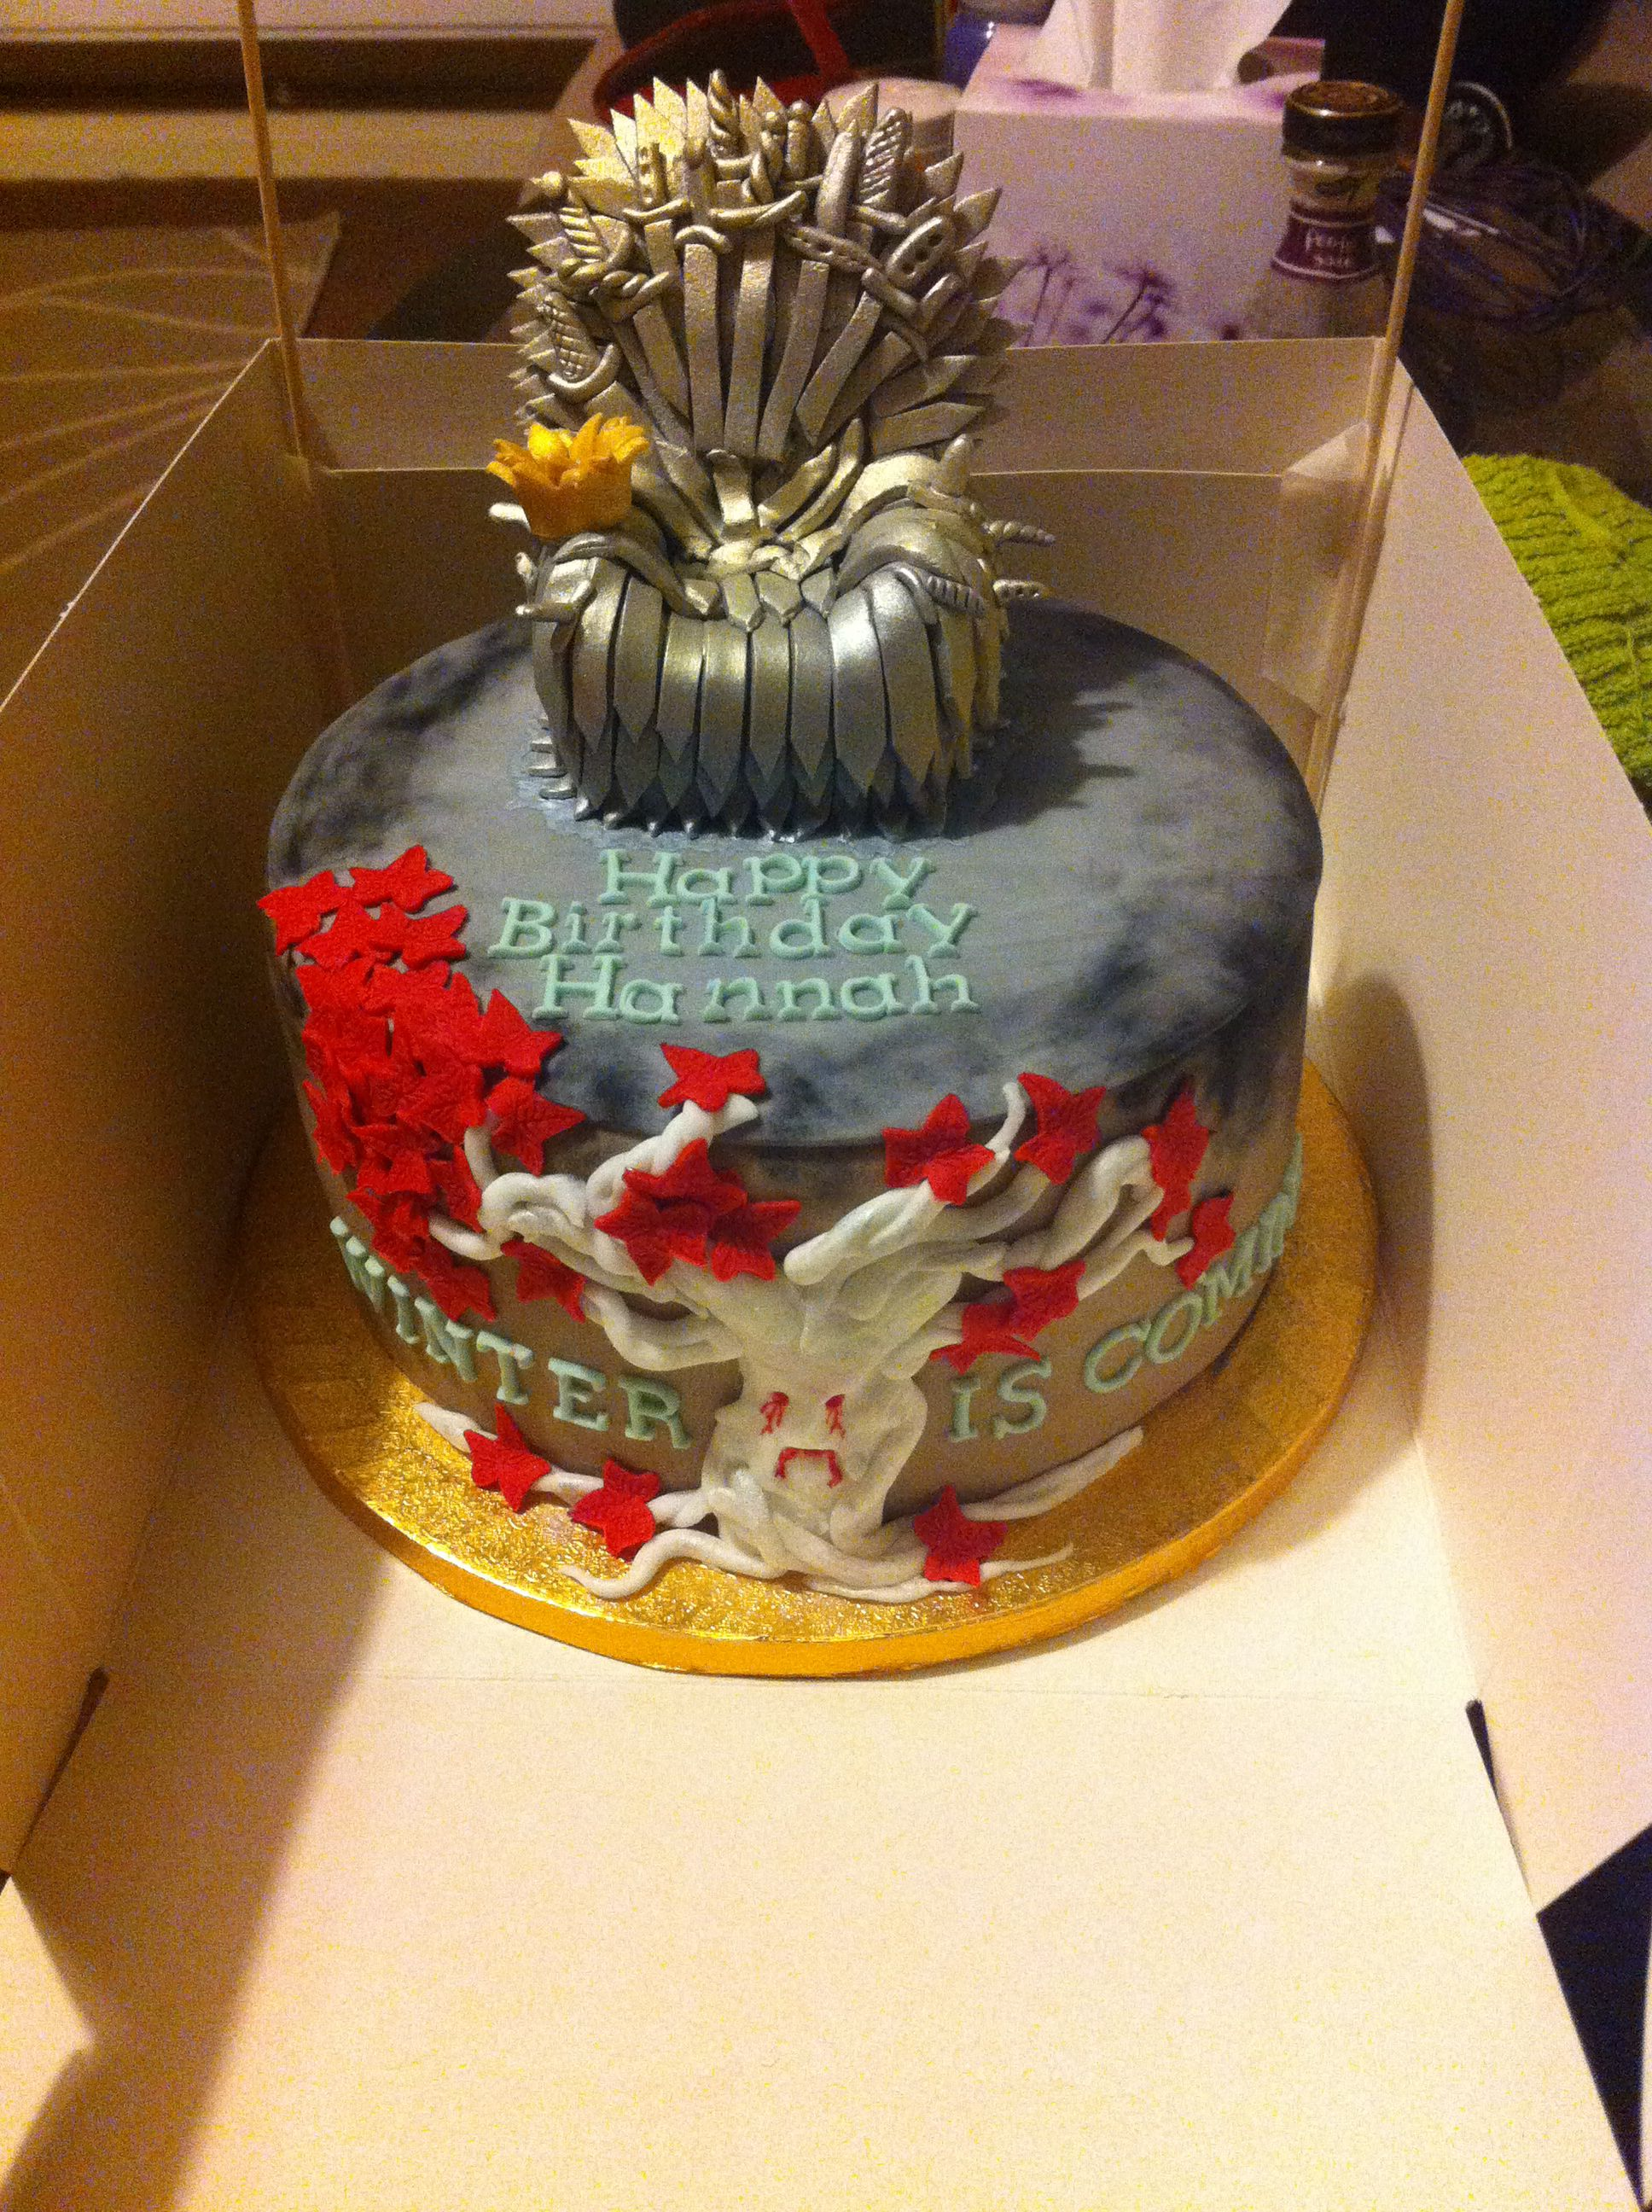 My birthday cake probably the best Game of Thrones cake ever